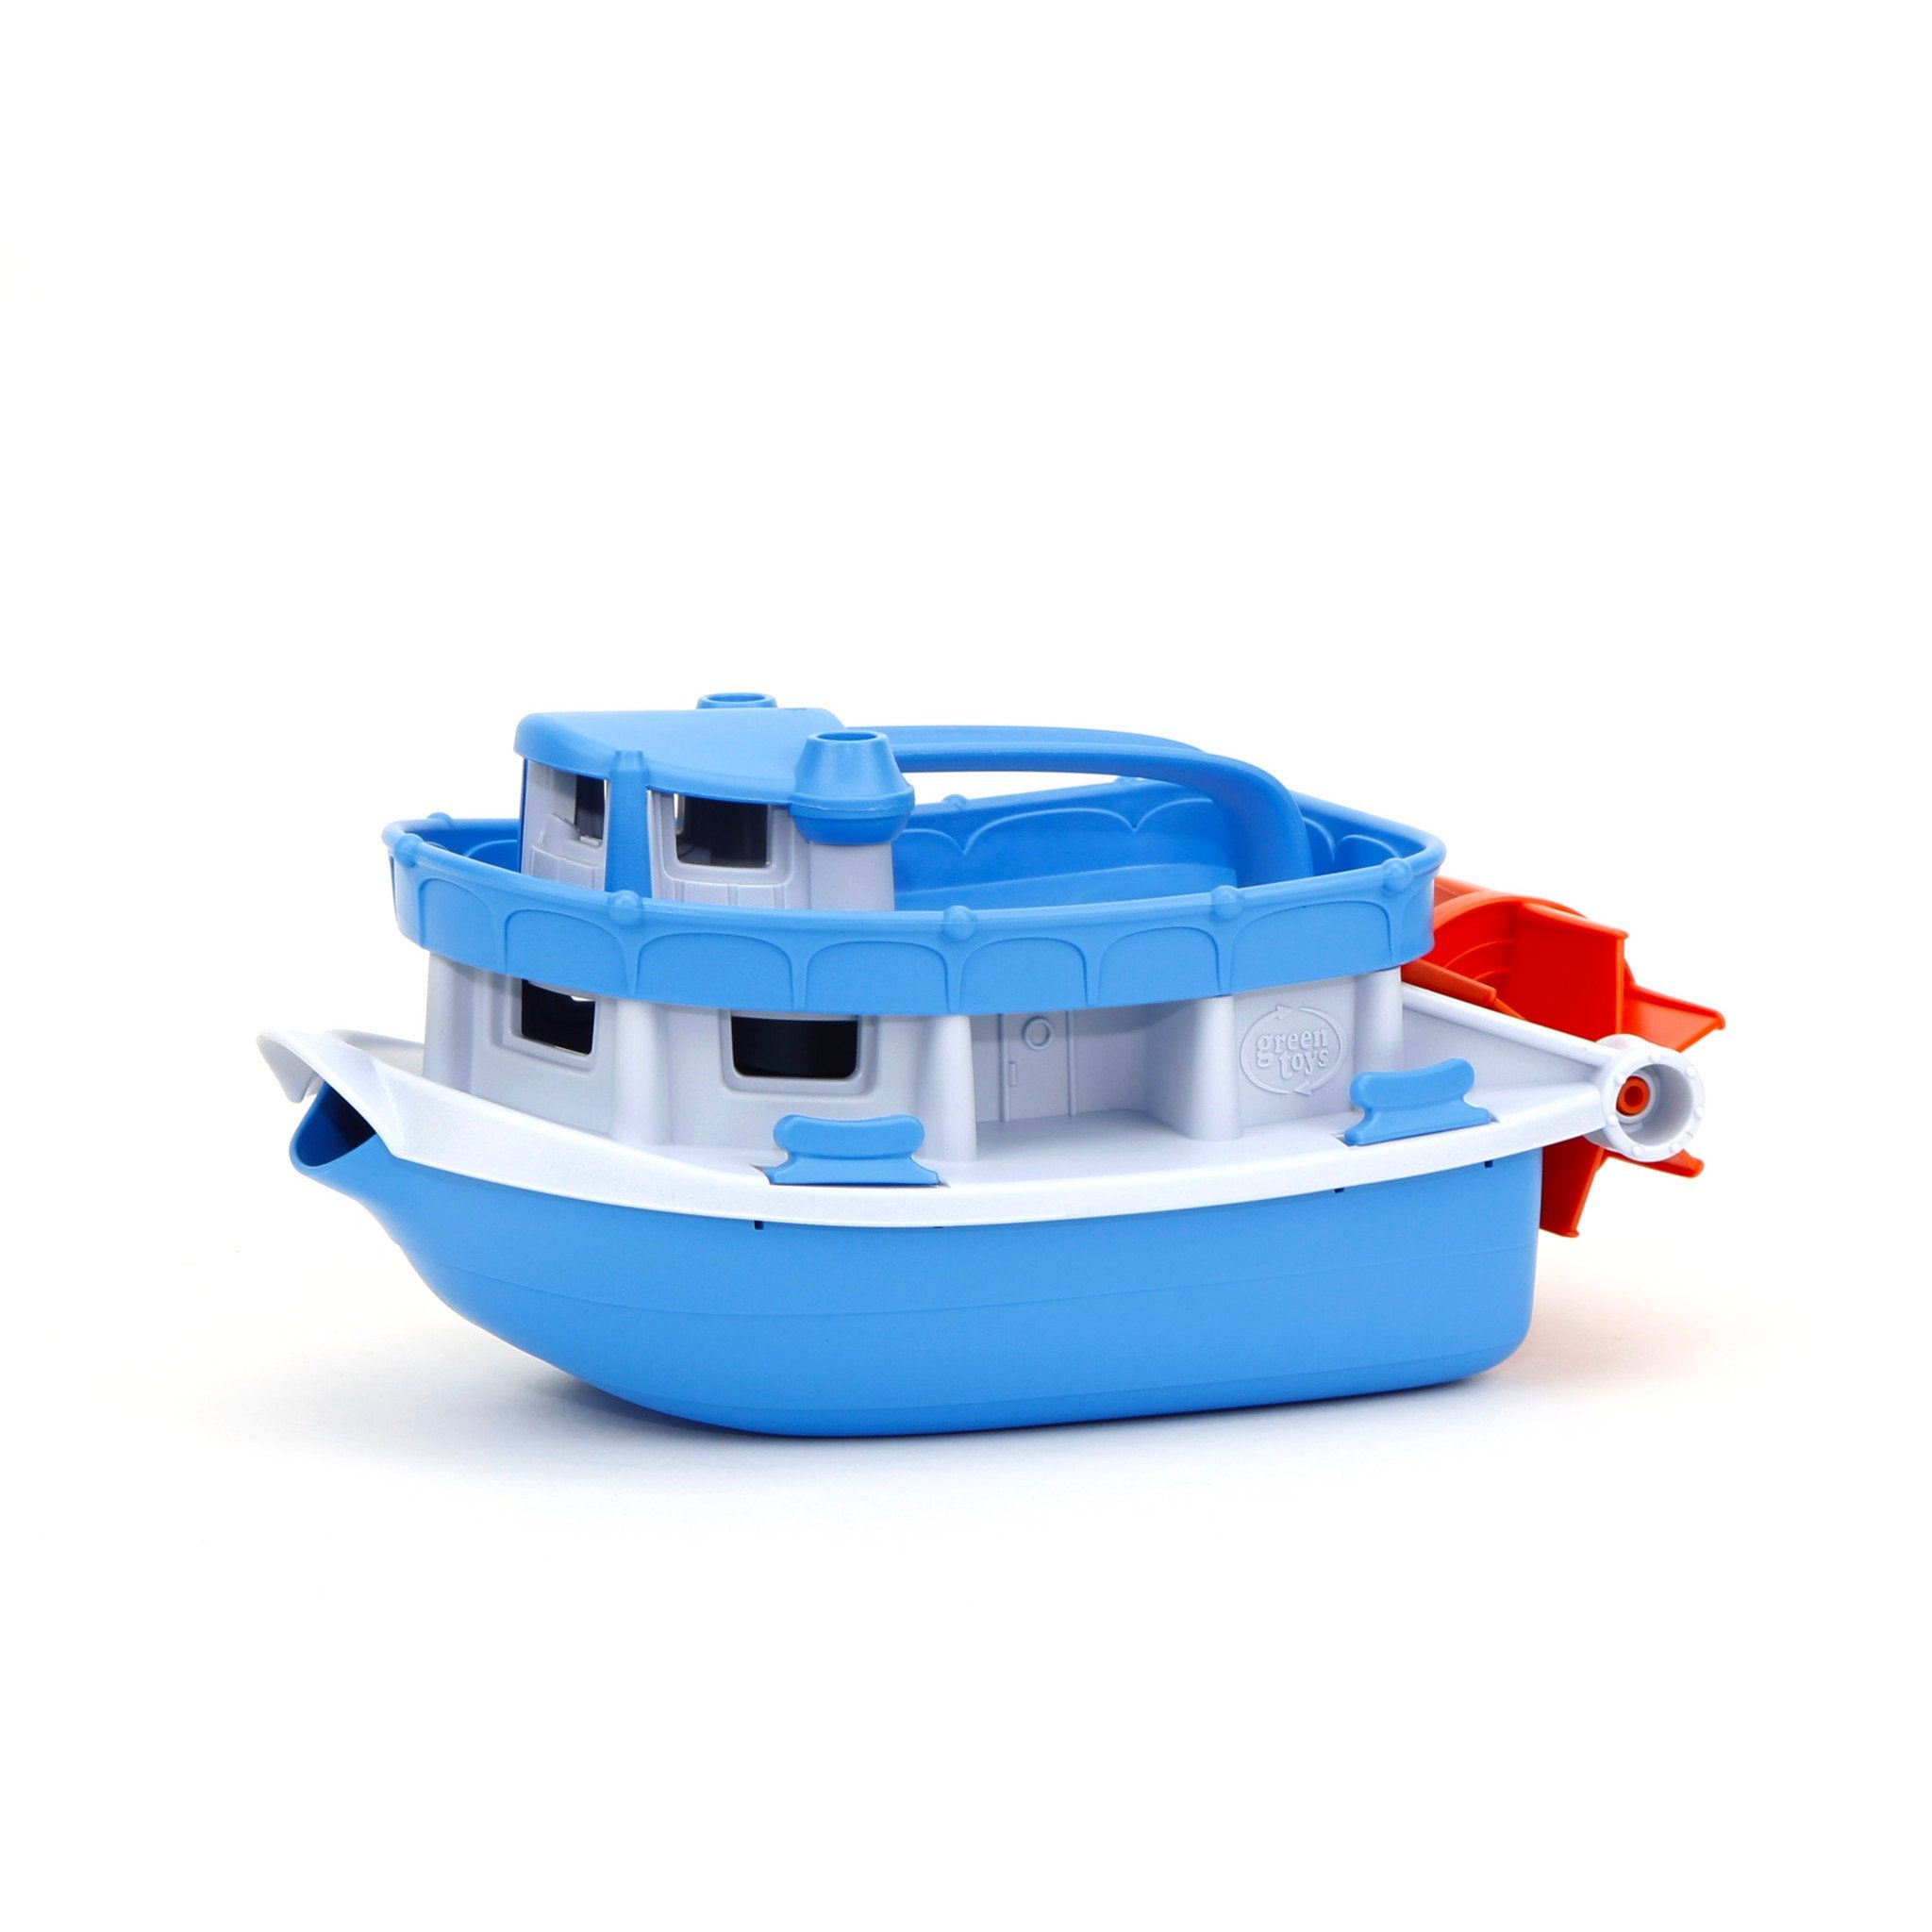 Green Toys Paddle Boat Green Toys Play Vehicles at Little Earth Nest Eco Shop